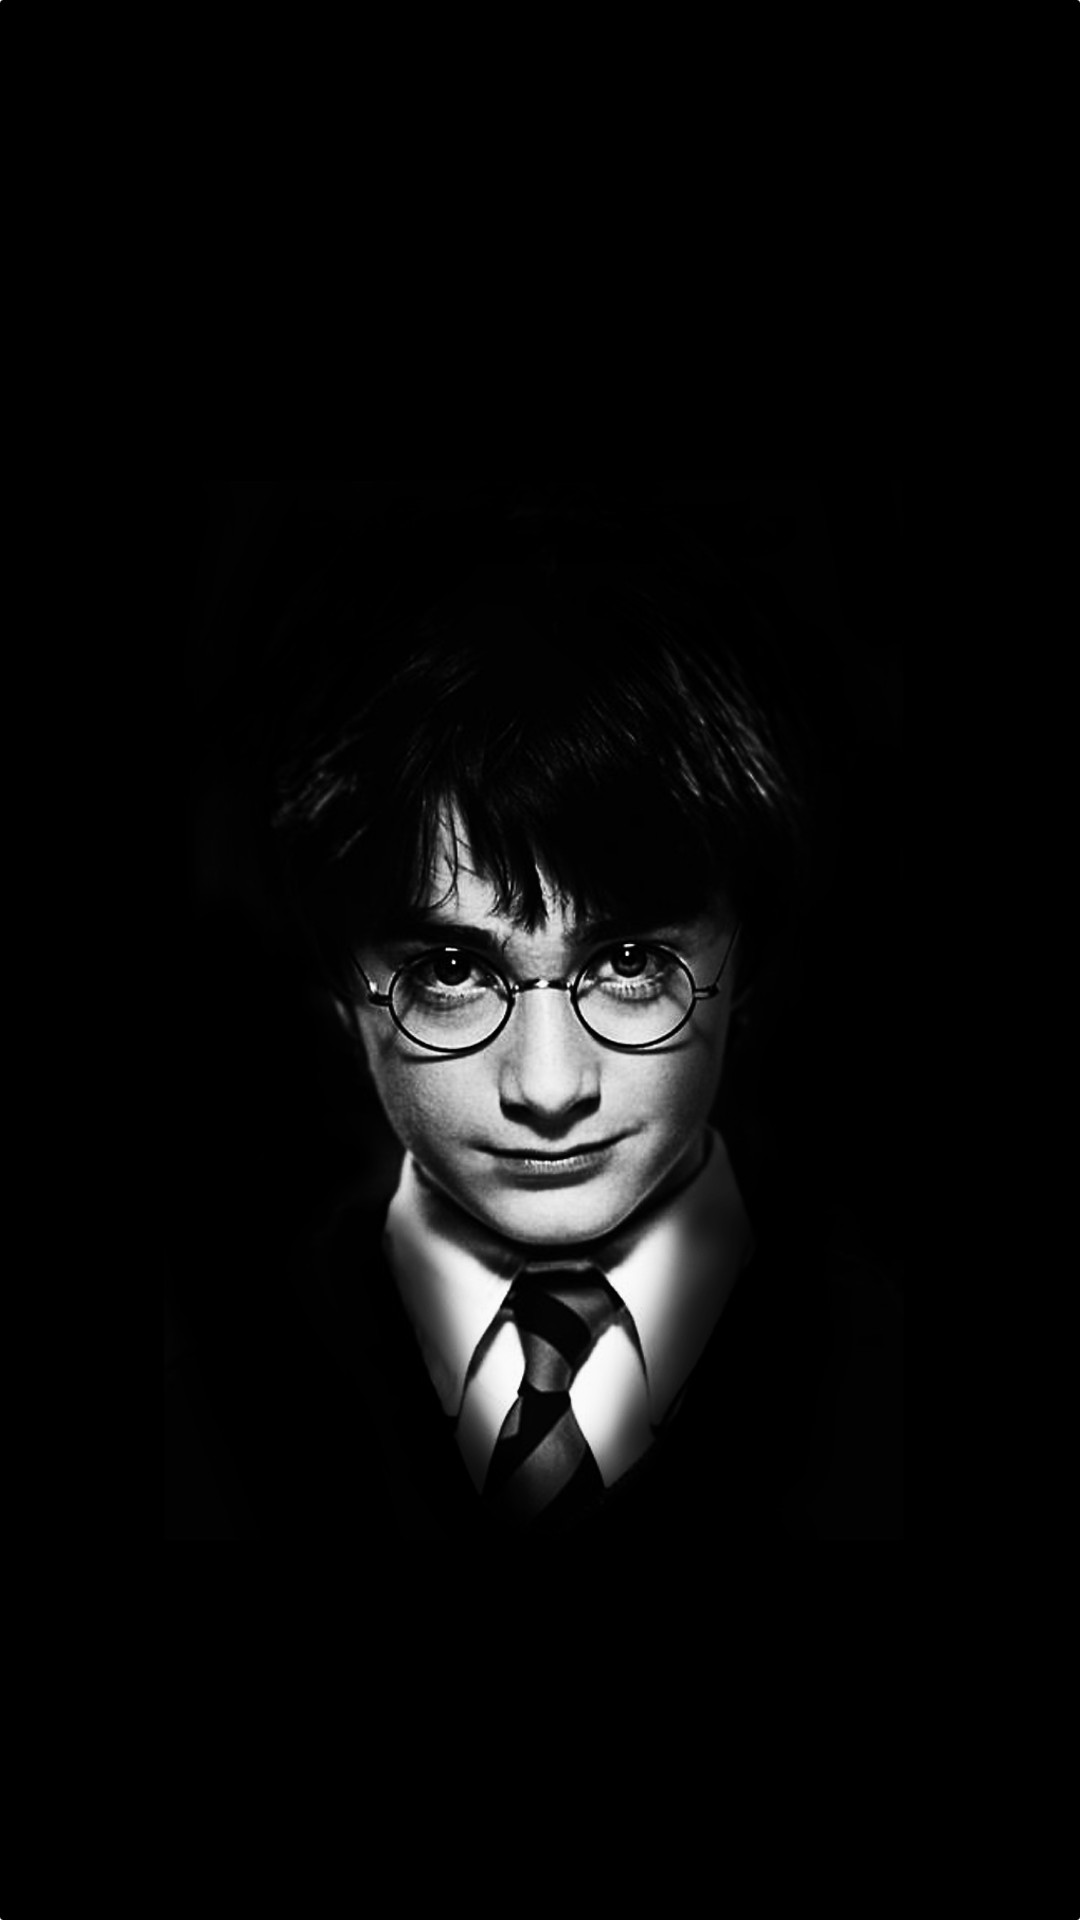 Most Inspiring Wallpaper Harry Potter Lock Screen - 211283-best-harry-potter-wallpapers-1080x1920-meizu  Perfect Image Reference_614388.jpg